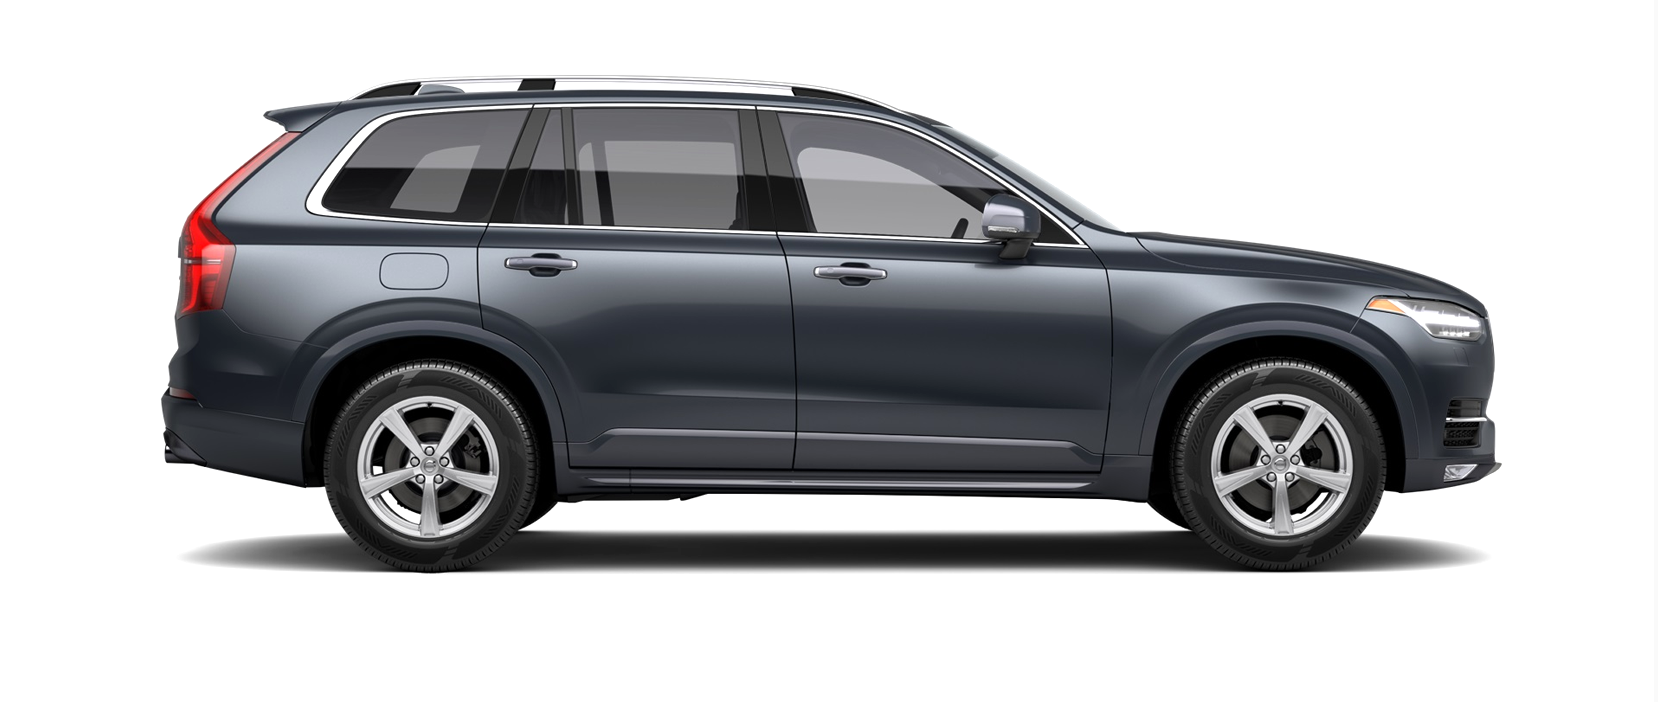 2019 Volvo XC90 T5 Momentum shown